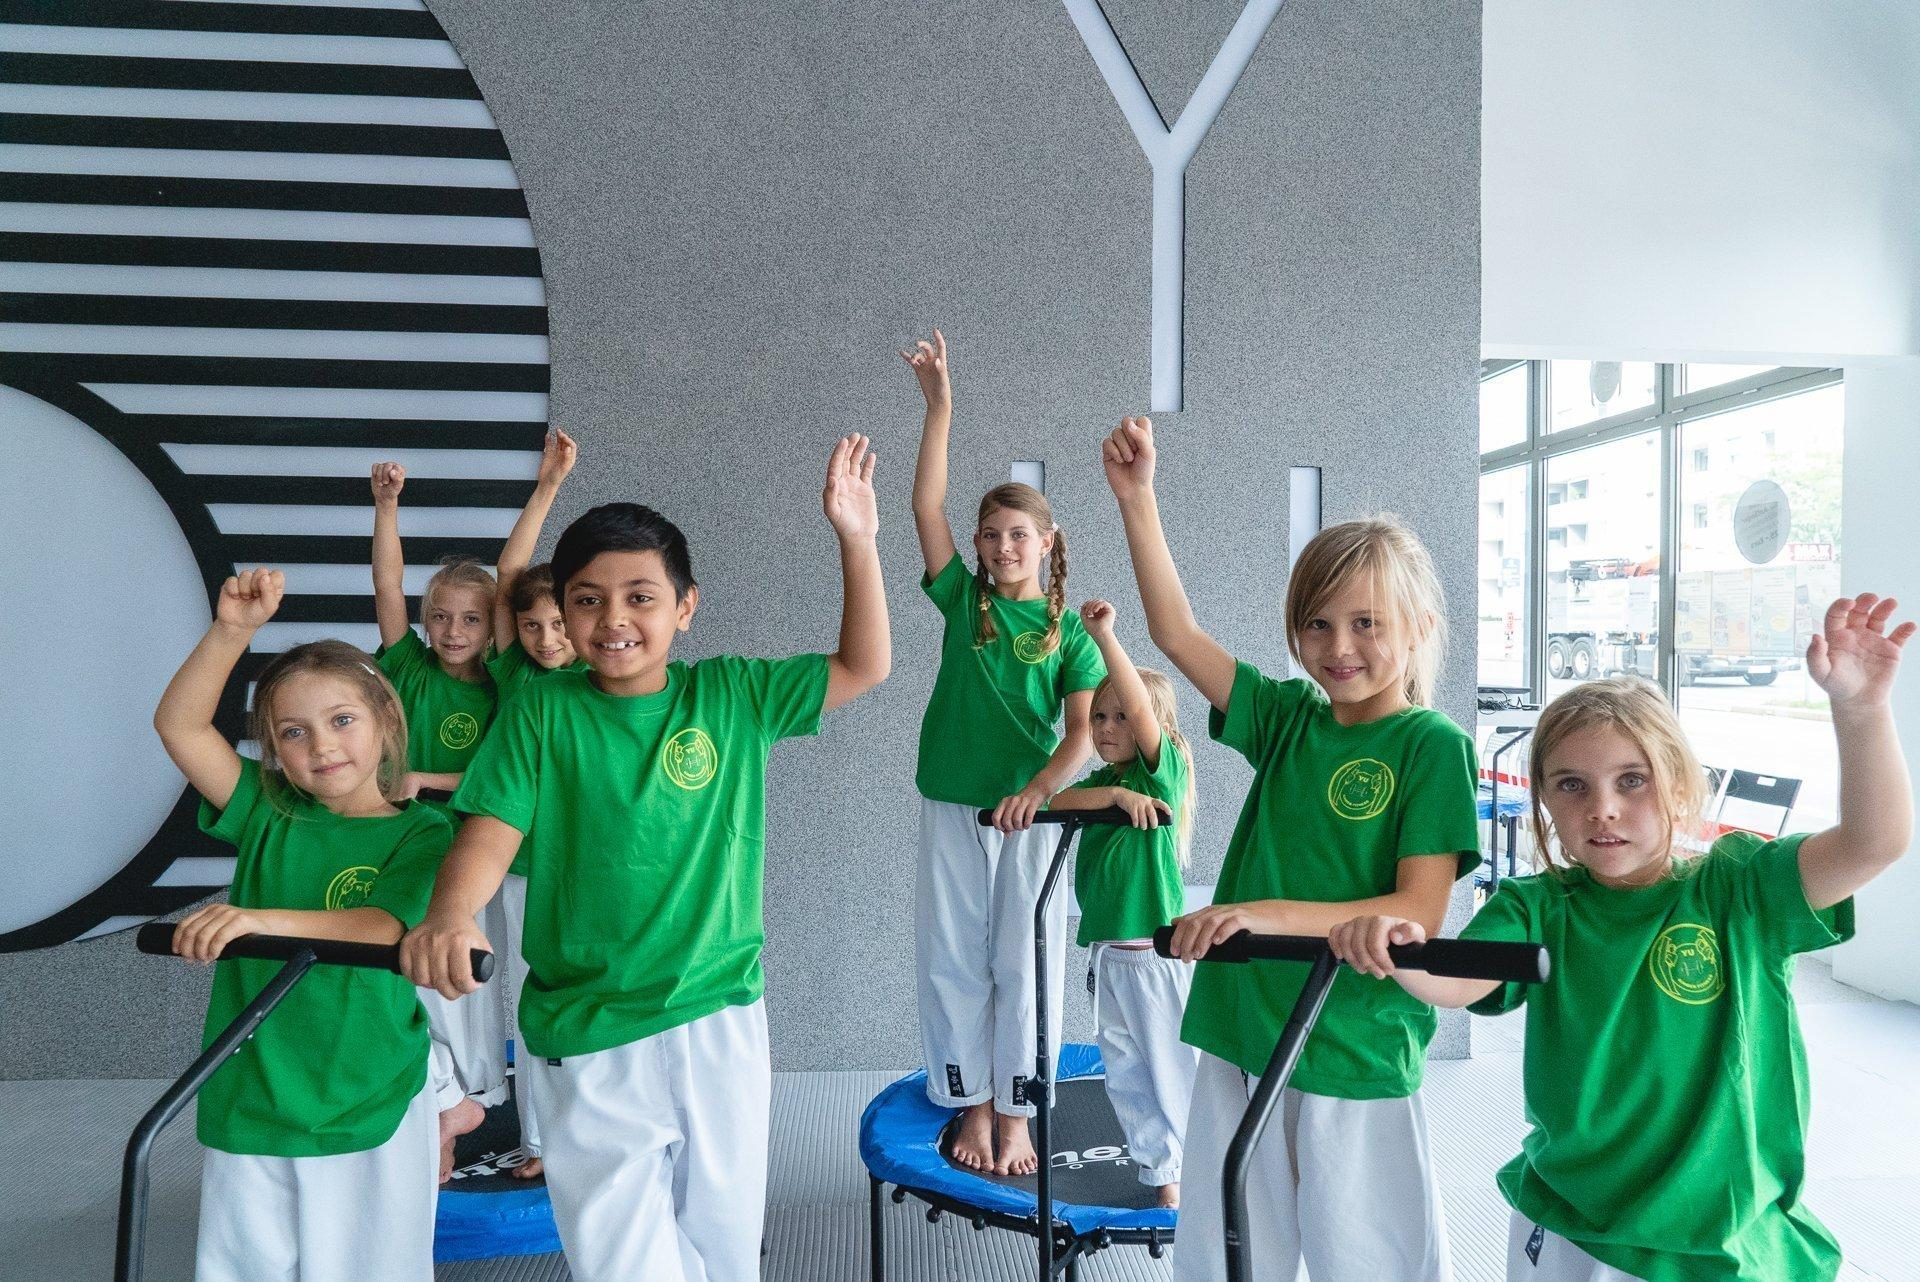 Sommer-Camp Kinder YOUNG-UNG Taekwondo BIG YU Kinderbetreuung YU Kinderfitness Wagramer Straße BIG YU